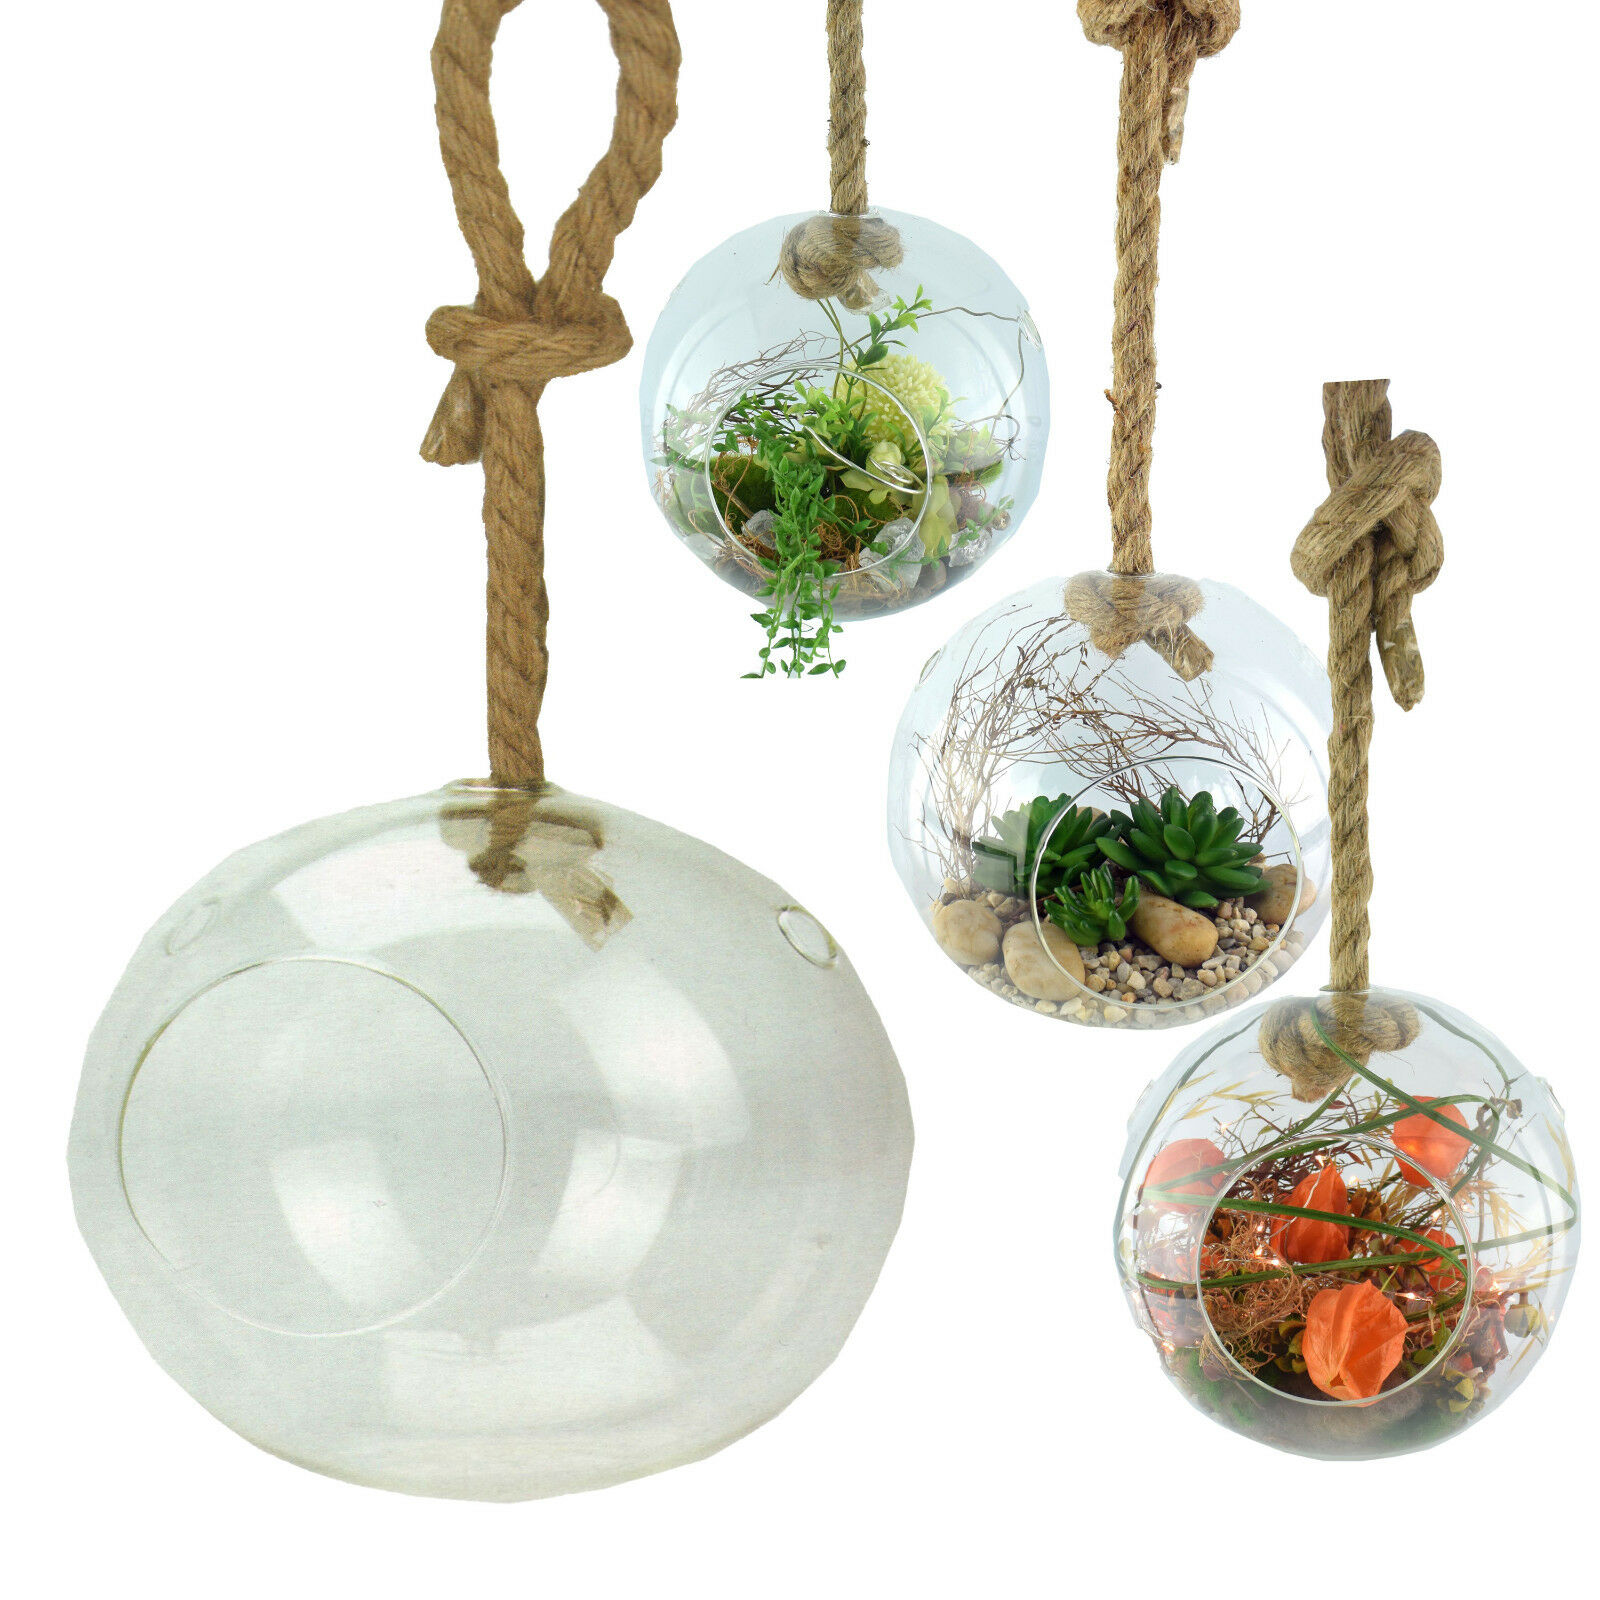 xxl glaskugel zum h ngen terrarium h ngevase deko pflanzen. Black Bedroom Furniture Sets. Home Design Ideas